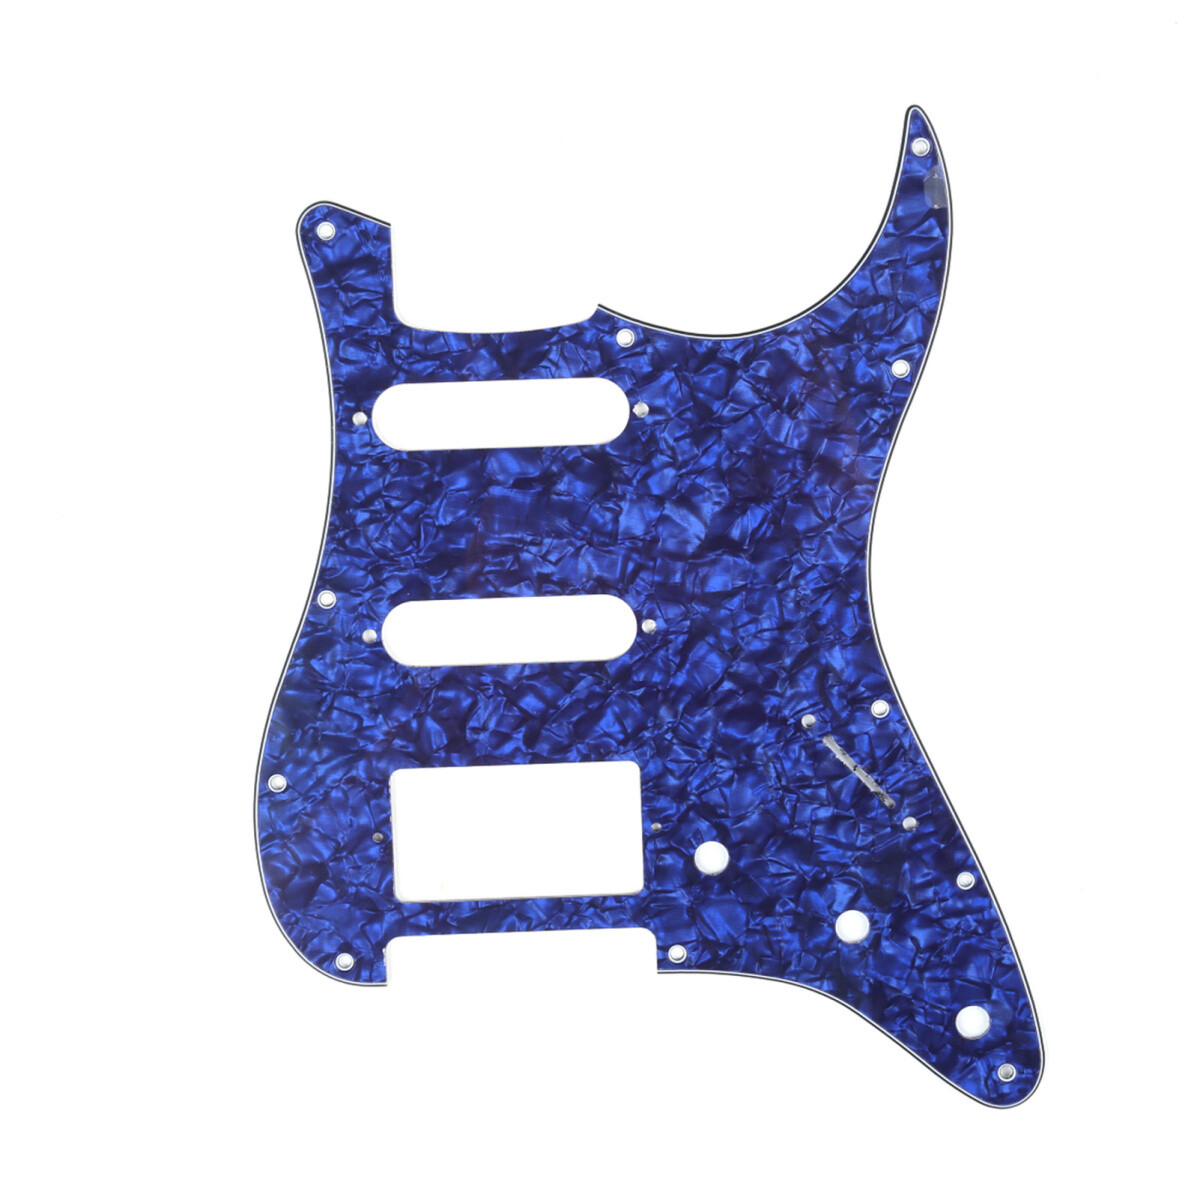 Brio 11-Hole Modern Style Strat HSS Pickguard for American Stratocaster Pearl Blue